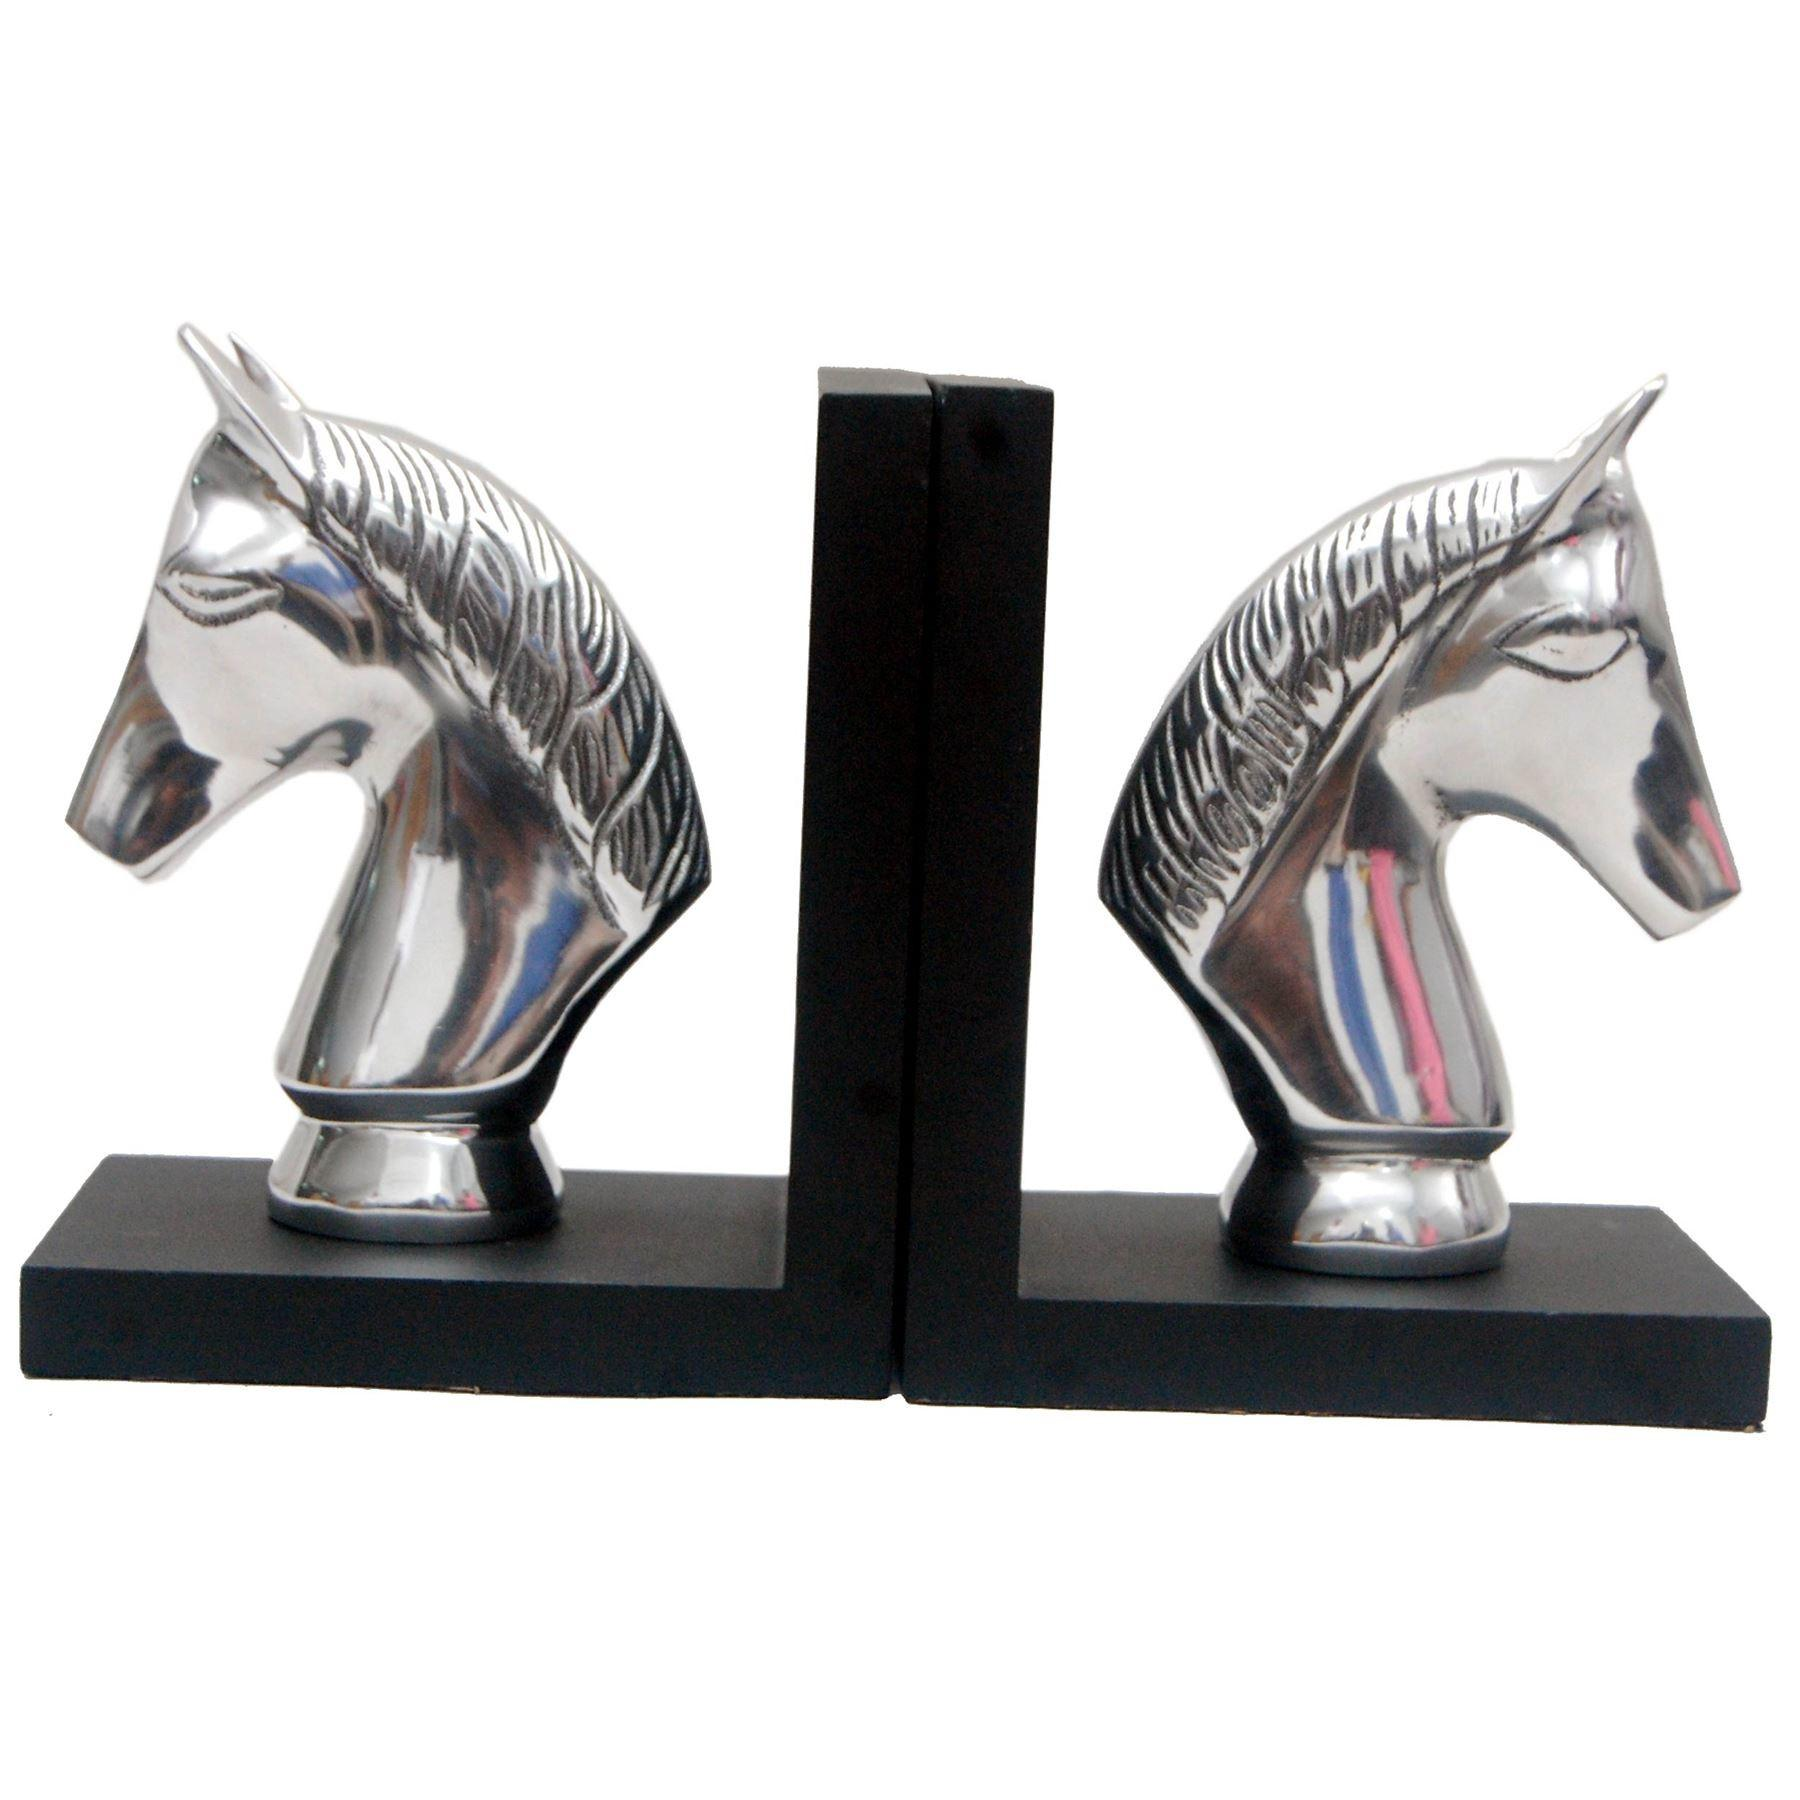 Silver Finish Metallic Bookend Shabby Chic Books Shelving